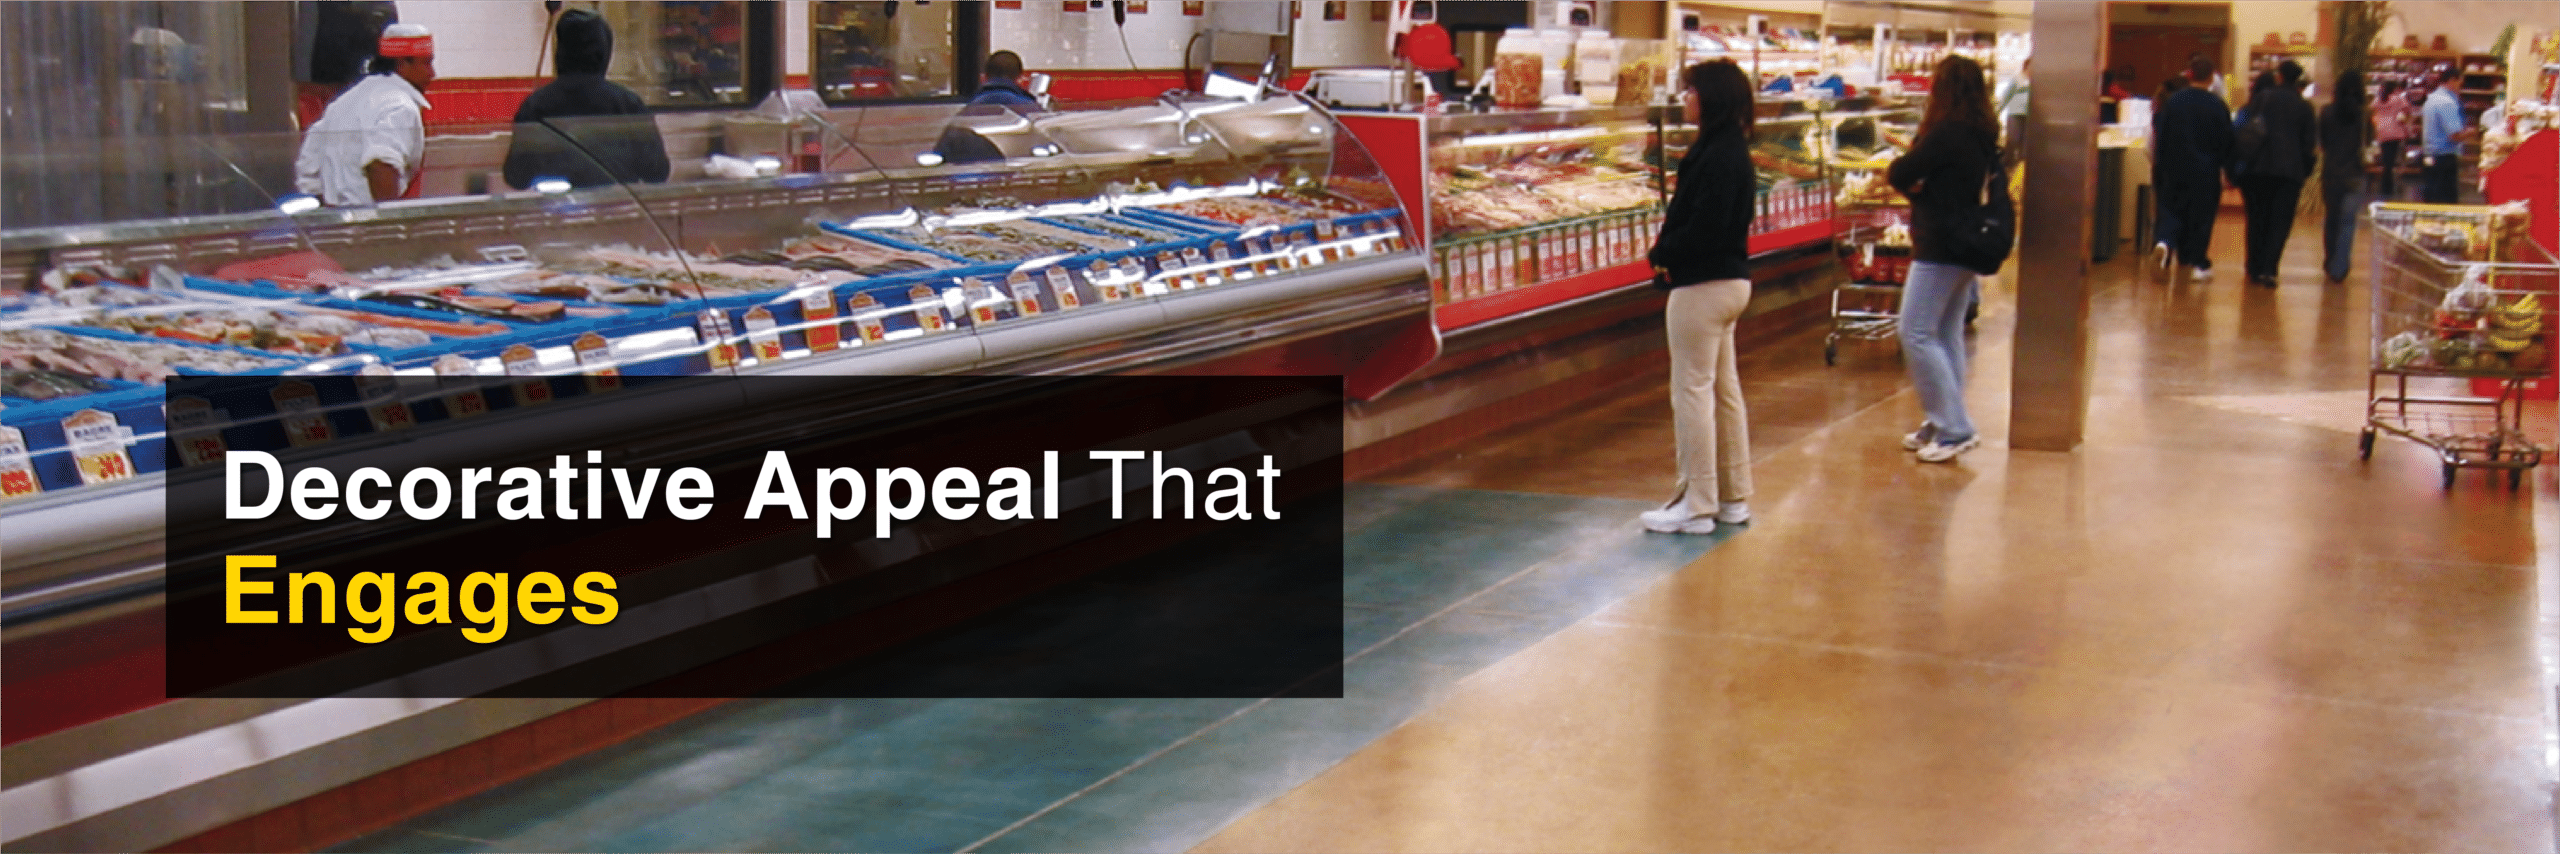 Grocery store meat counter floor area with concrete acid stain and industrial top coat with tag line: Decorative Appeal That Engages